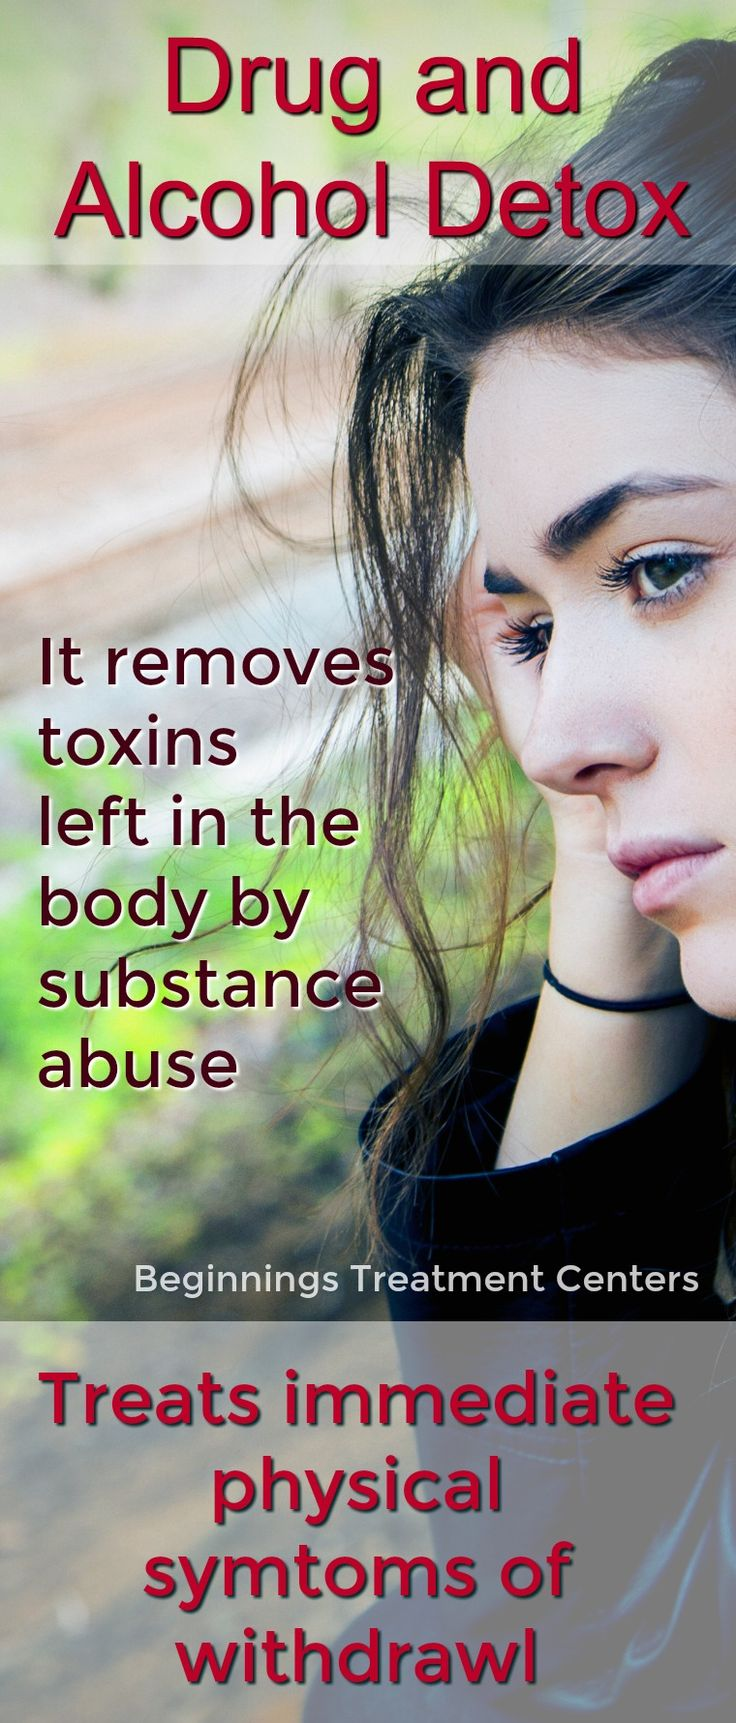 Detoxification, commonly known as detox, is a process that allows a person to safely and systematically withdraw from alcohol or addictive drugs. http://stfi.re/xnlgvnv